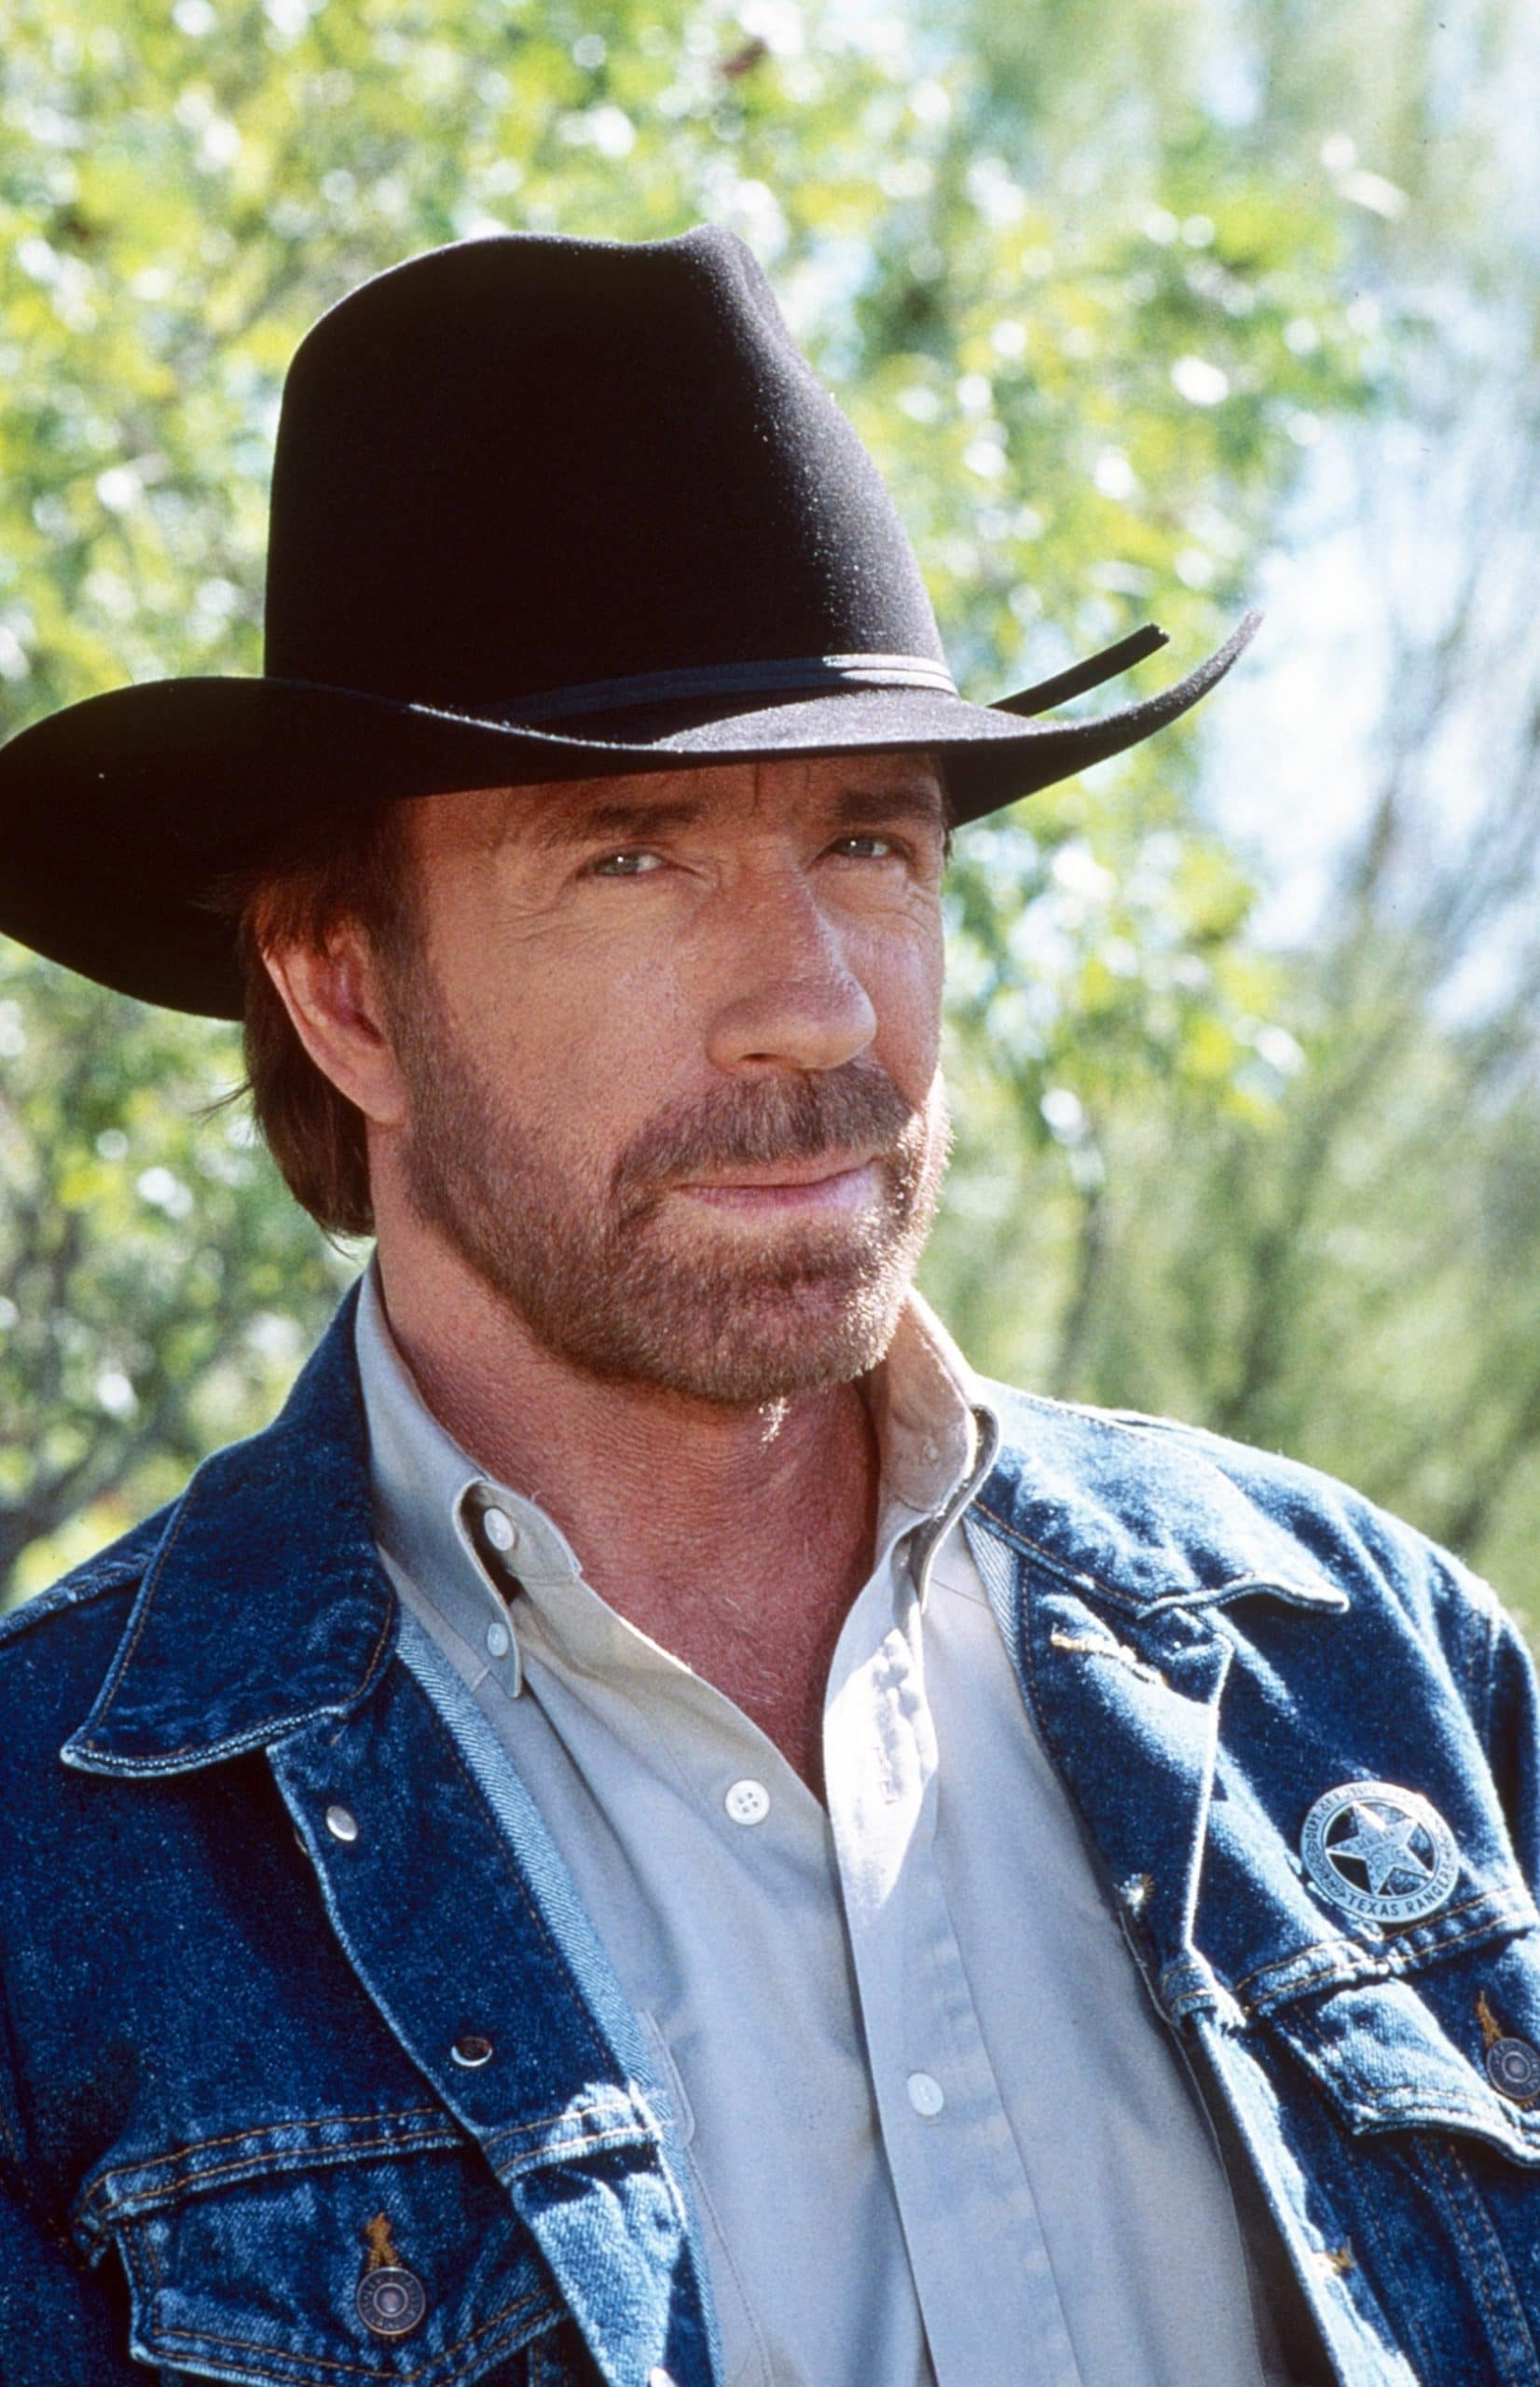 Chuck Norris Confirms He Was NOT At The U.S. Capitol Riots After Lookalike Photo Emerges